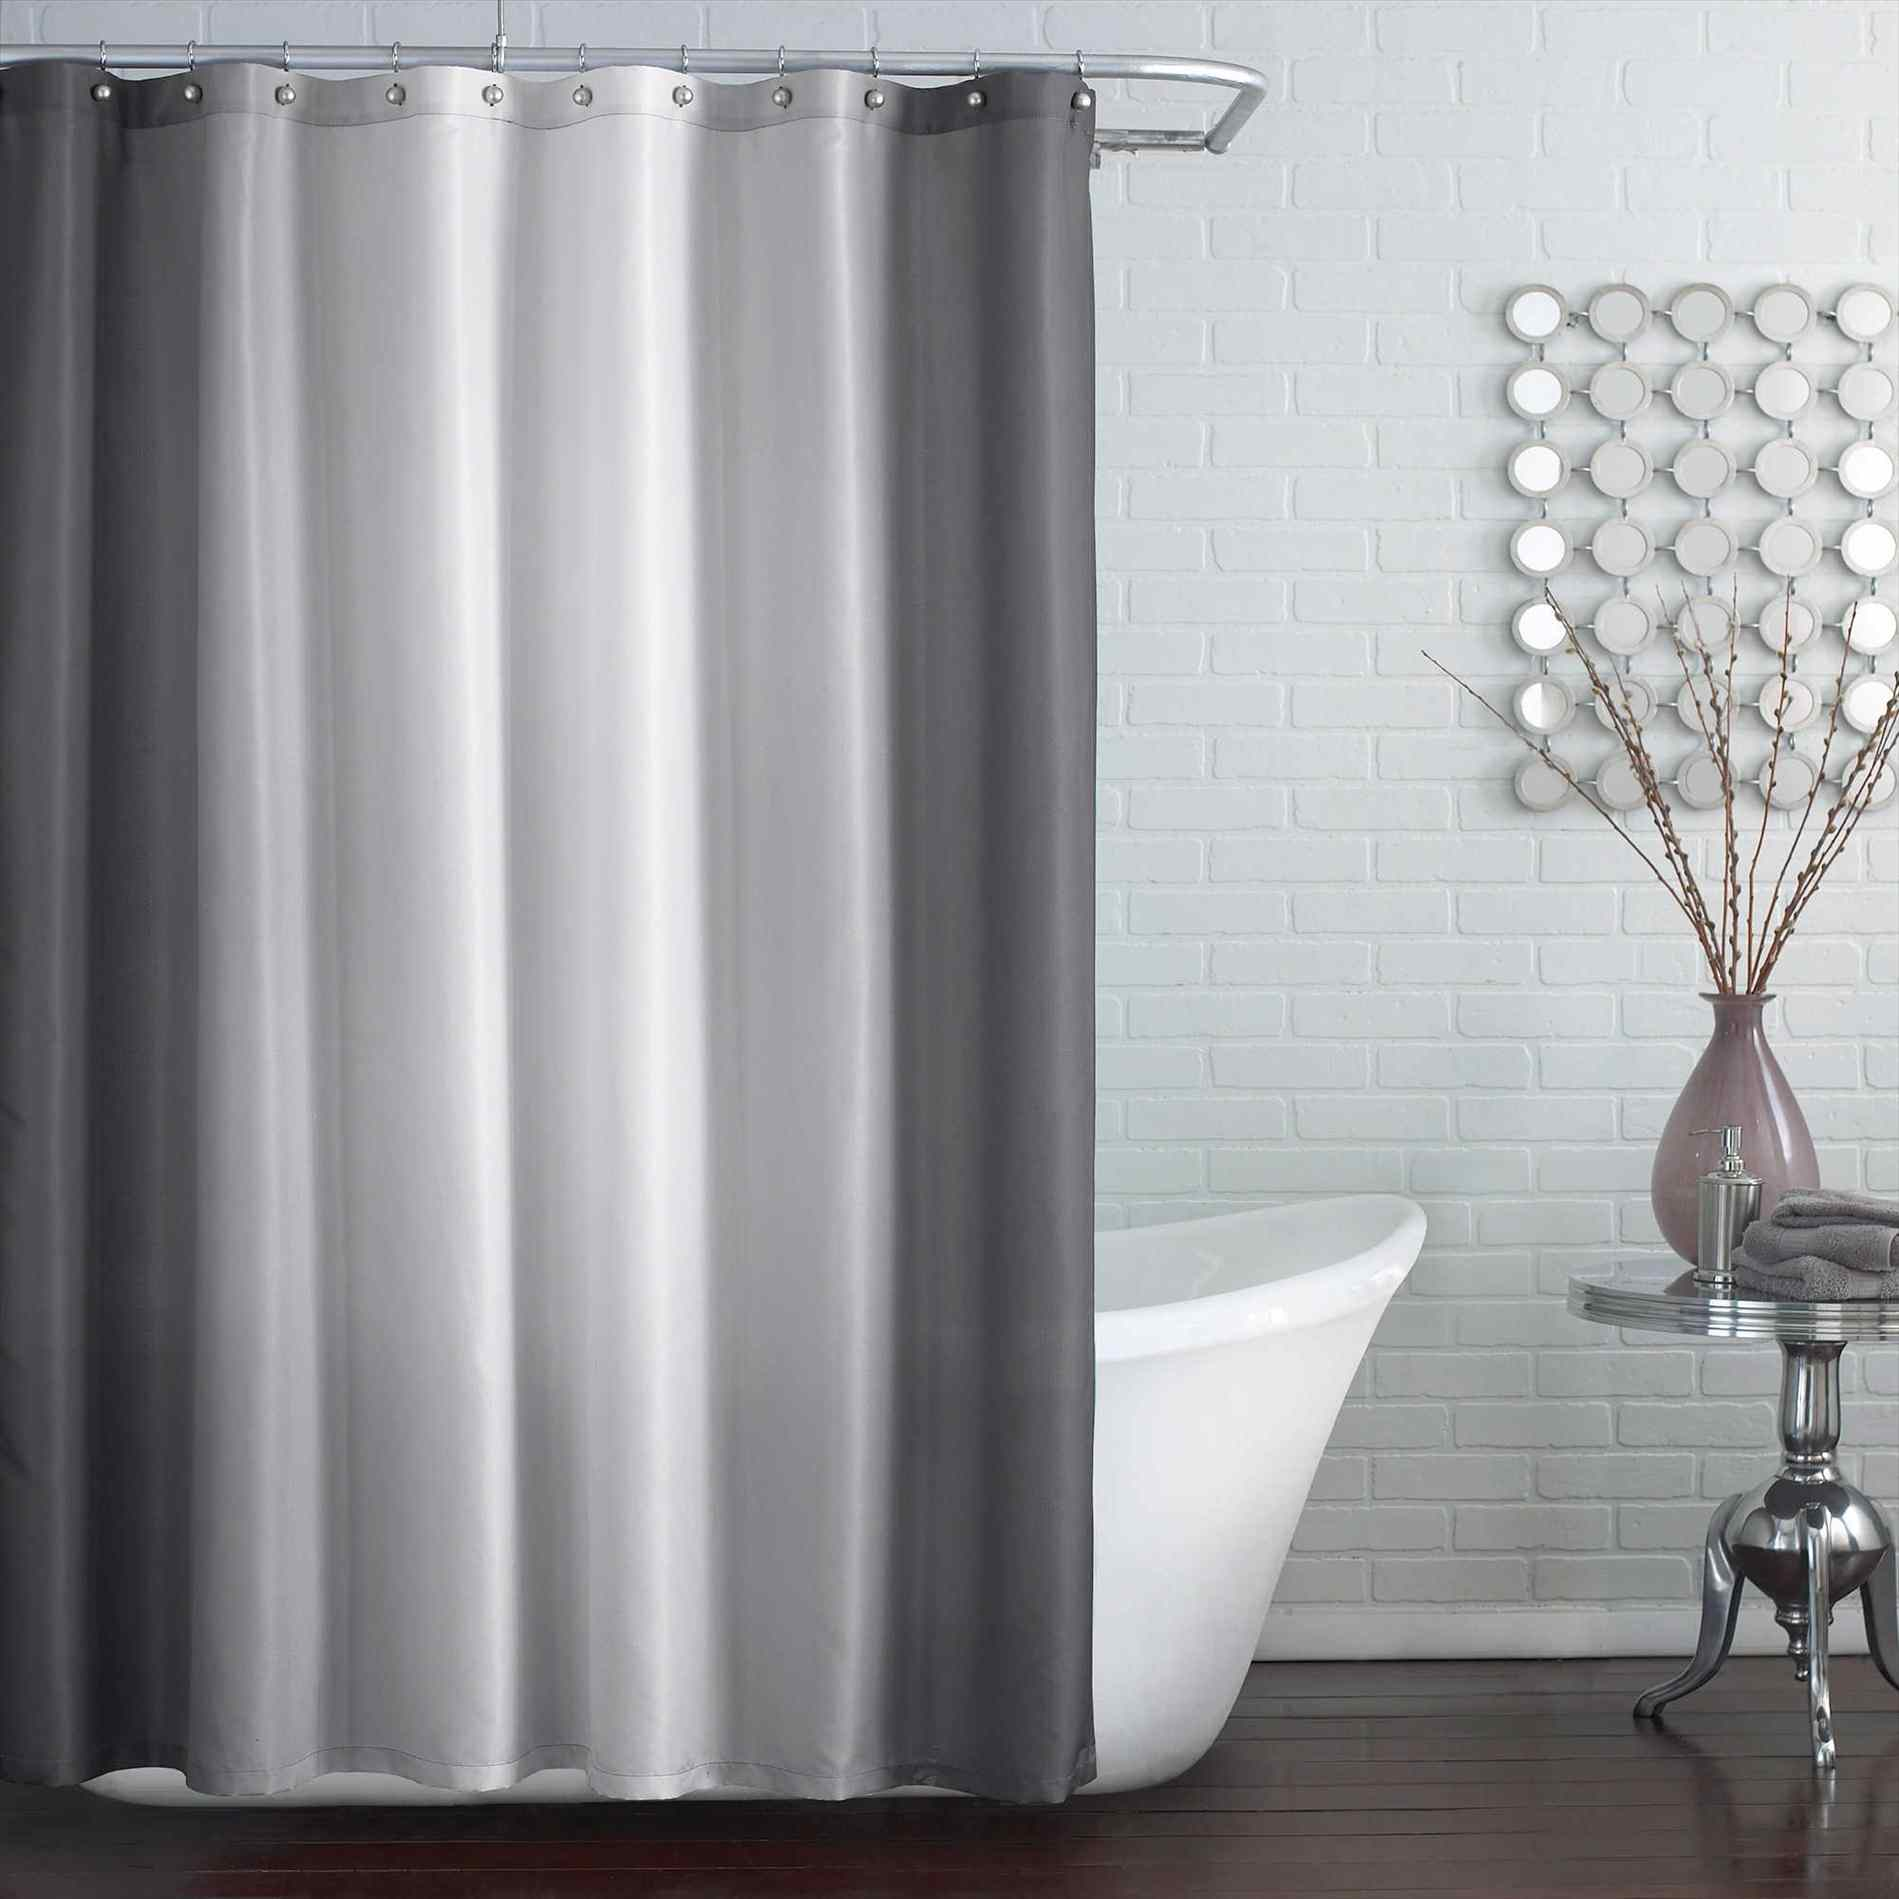 Curtains Extra Long Shower Curtain Canada Extra Wide Shower inside proportions 1899 X 1899